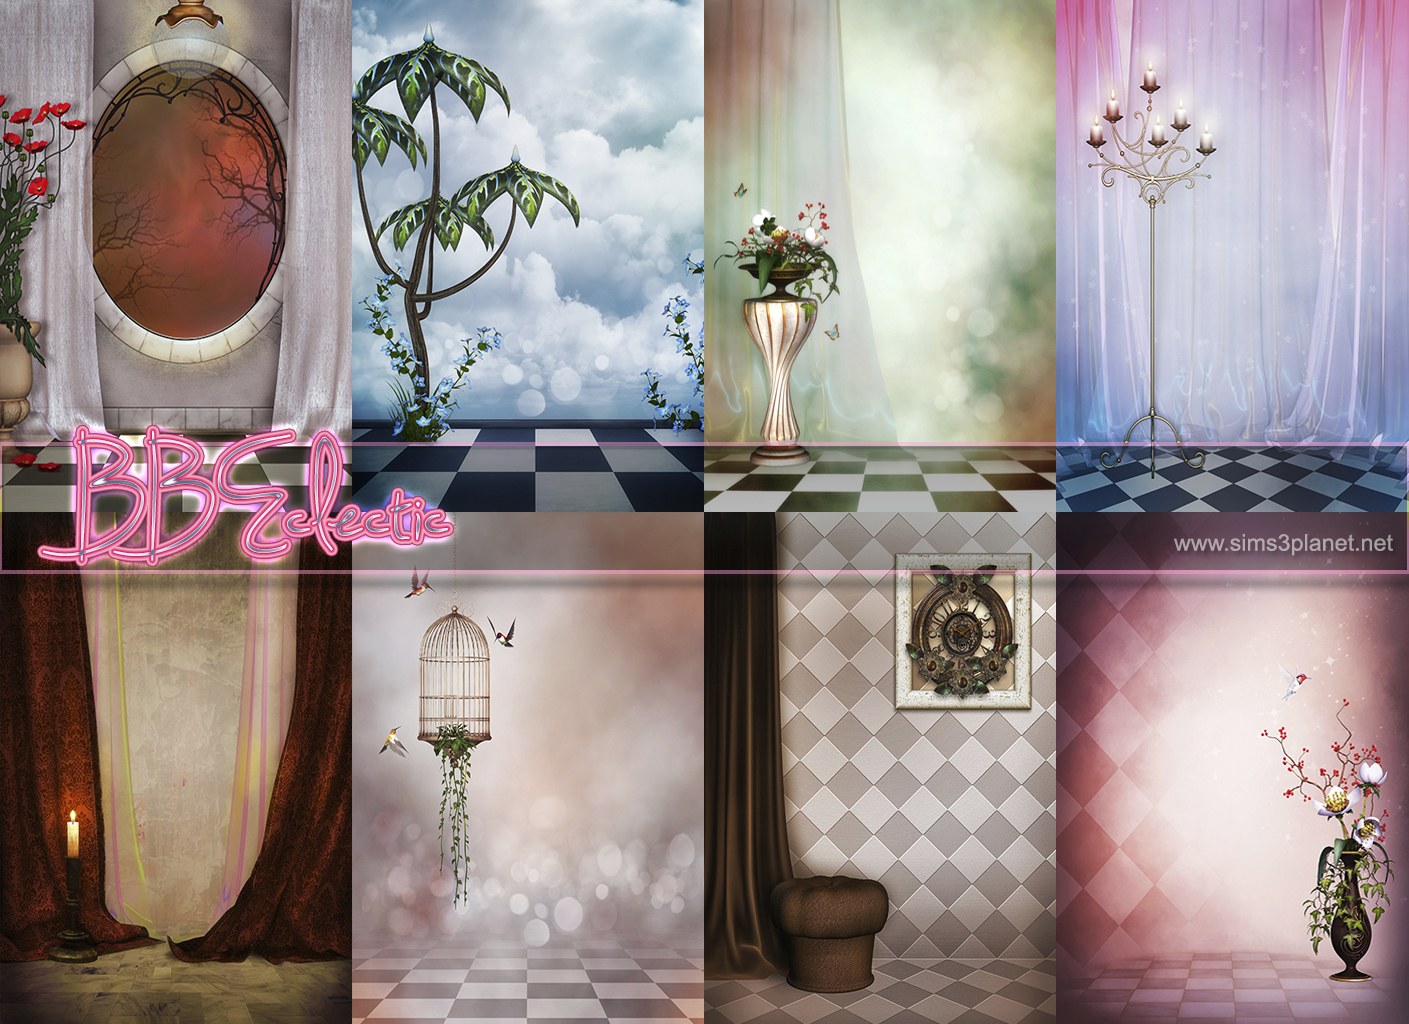 BBEclectic Backgrounds by lorelea